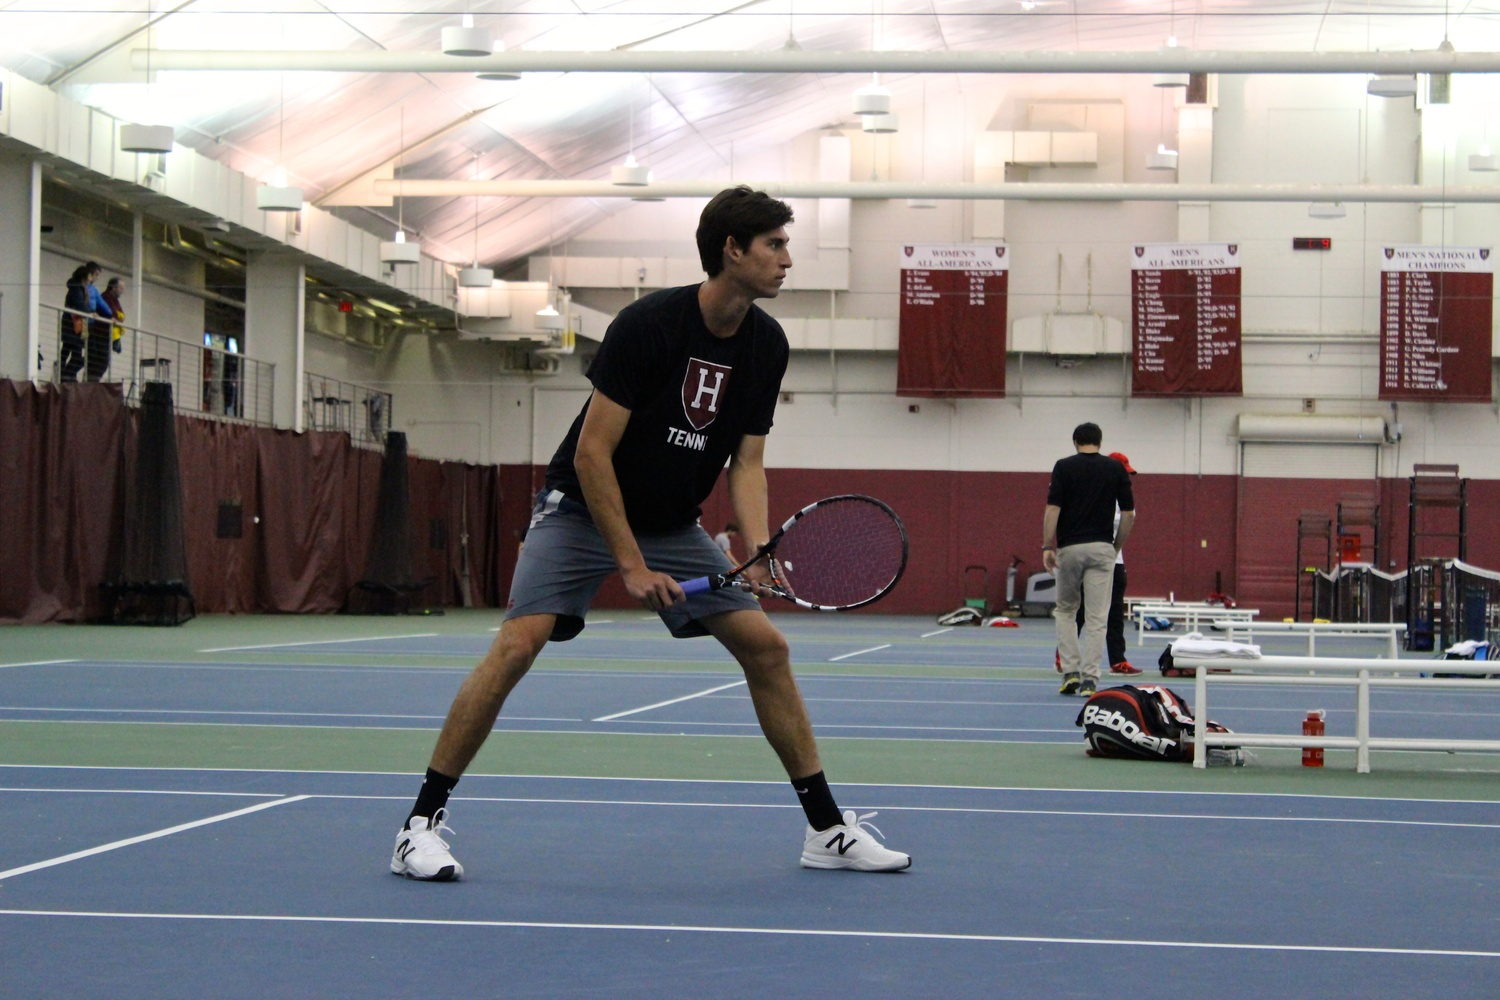 Sophomore Sebastian Beltrame and his doubles partner Nicky Hu won their match against Cornell's Sam Fleck and Colin Sinclair, 6-4.